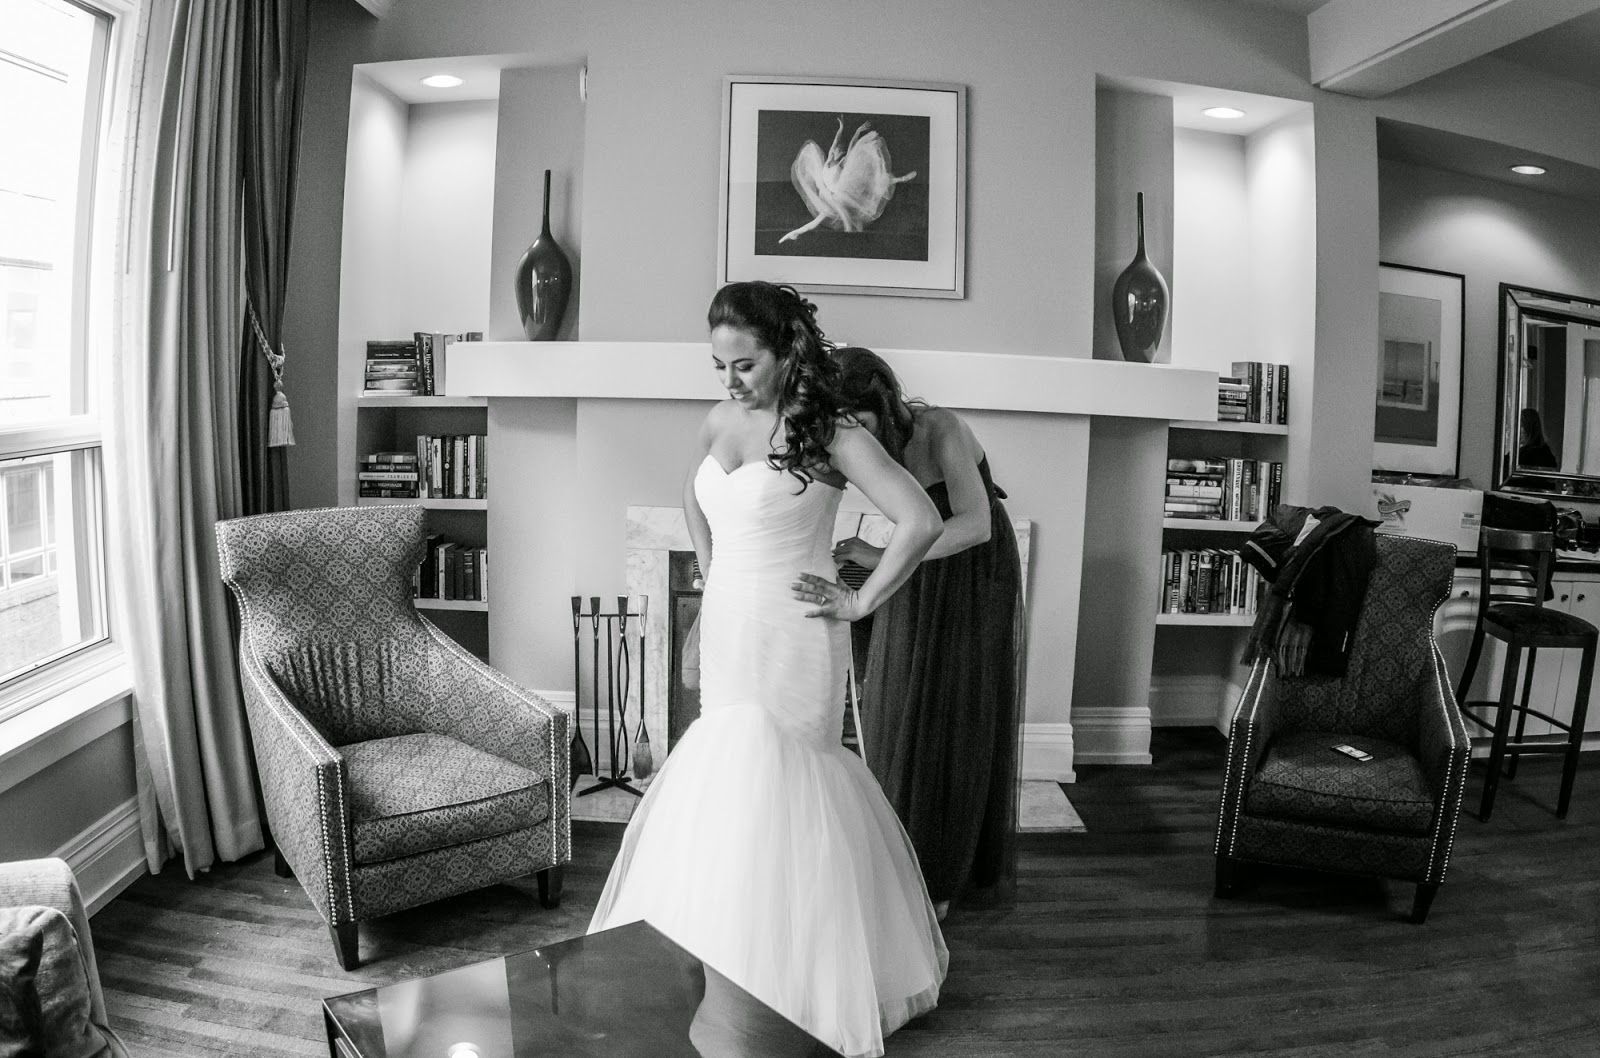 Seattle wedding photography - getting ready